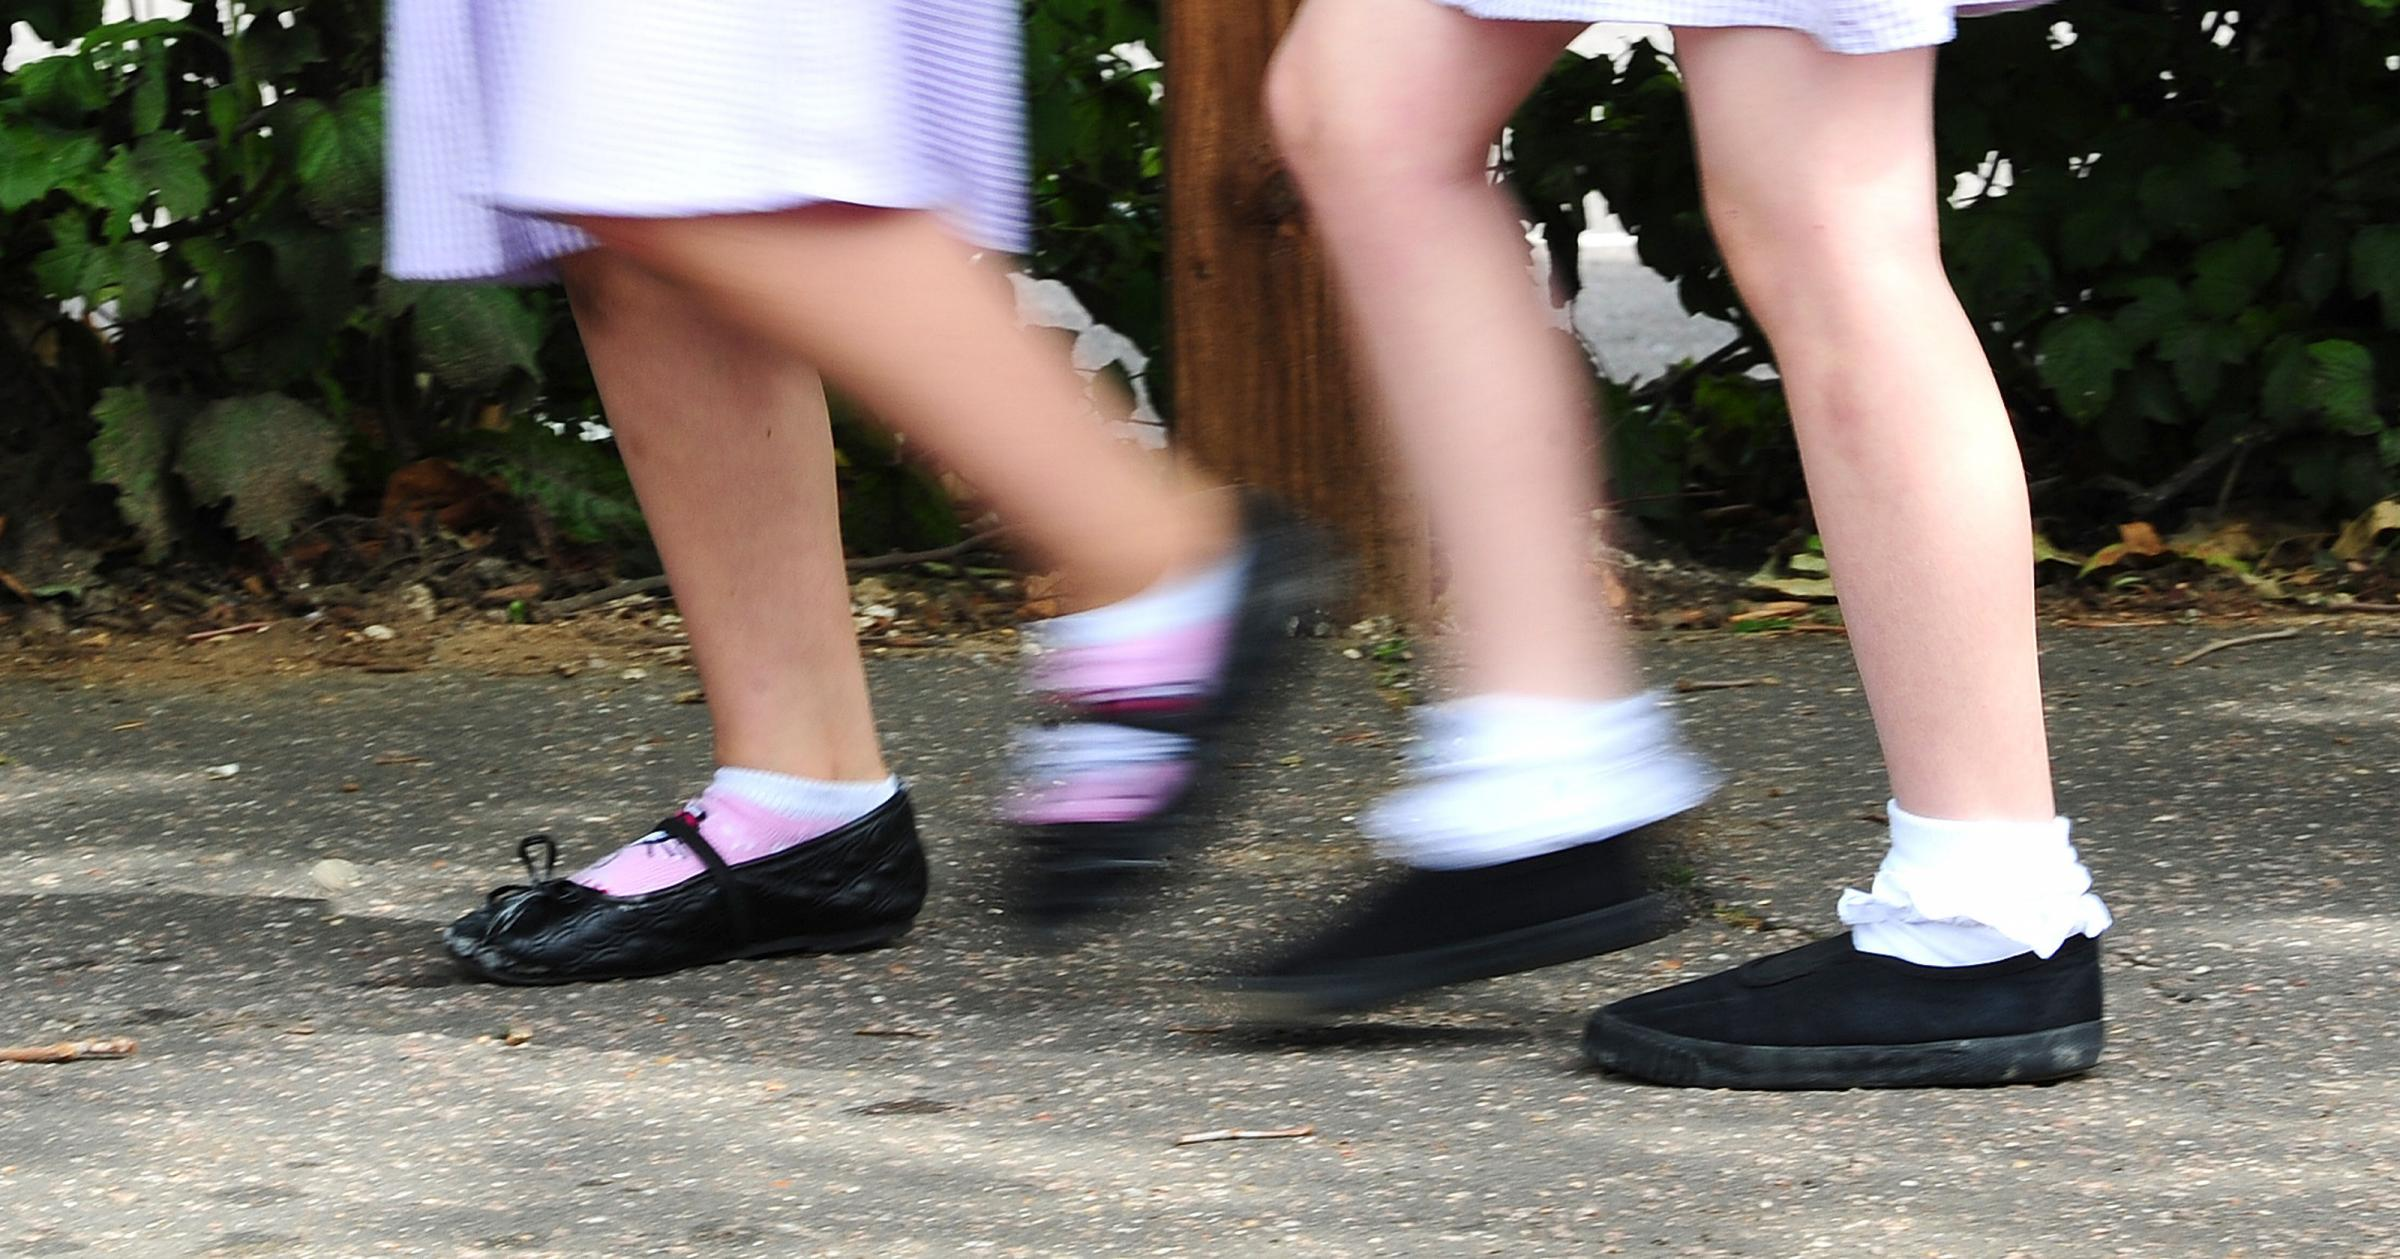 Embargoed to 0001 Wednesday August 15..File photo date 15/07/14 of two children.  Parents will spend an average £244.90 on kitting out each child to return to school next month, a survey suggests. PRESS ASSOCIATION Photo. Issue date: Wednesda